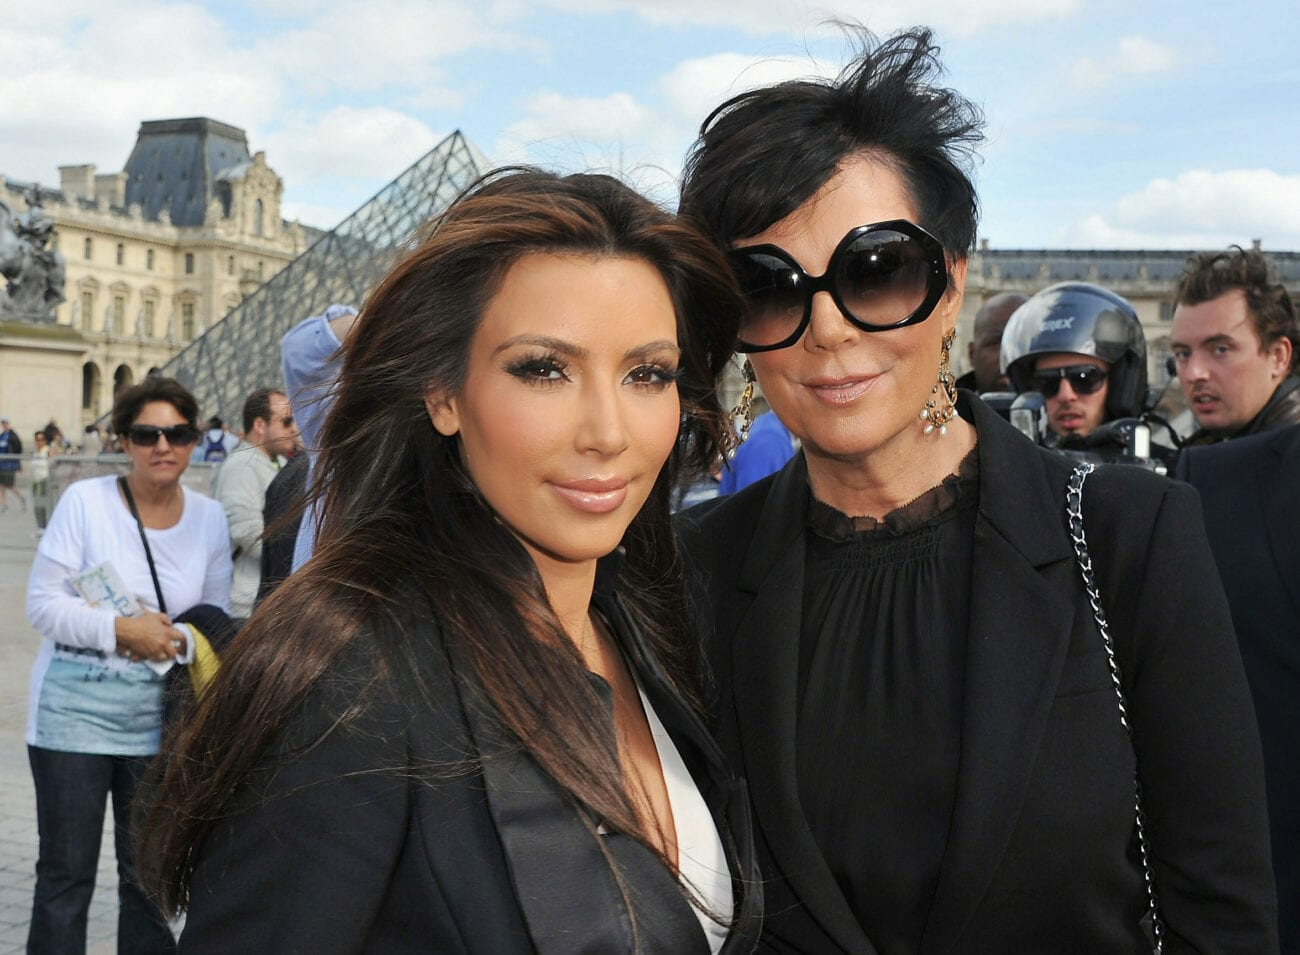 Is Kris Jenner behind Kim Kardashian and Kanye West's divorce? Check out everything we know so far.